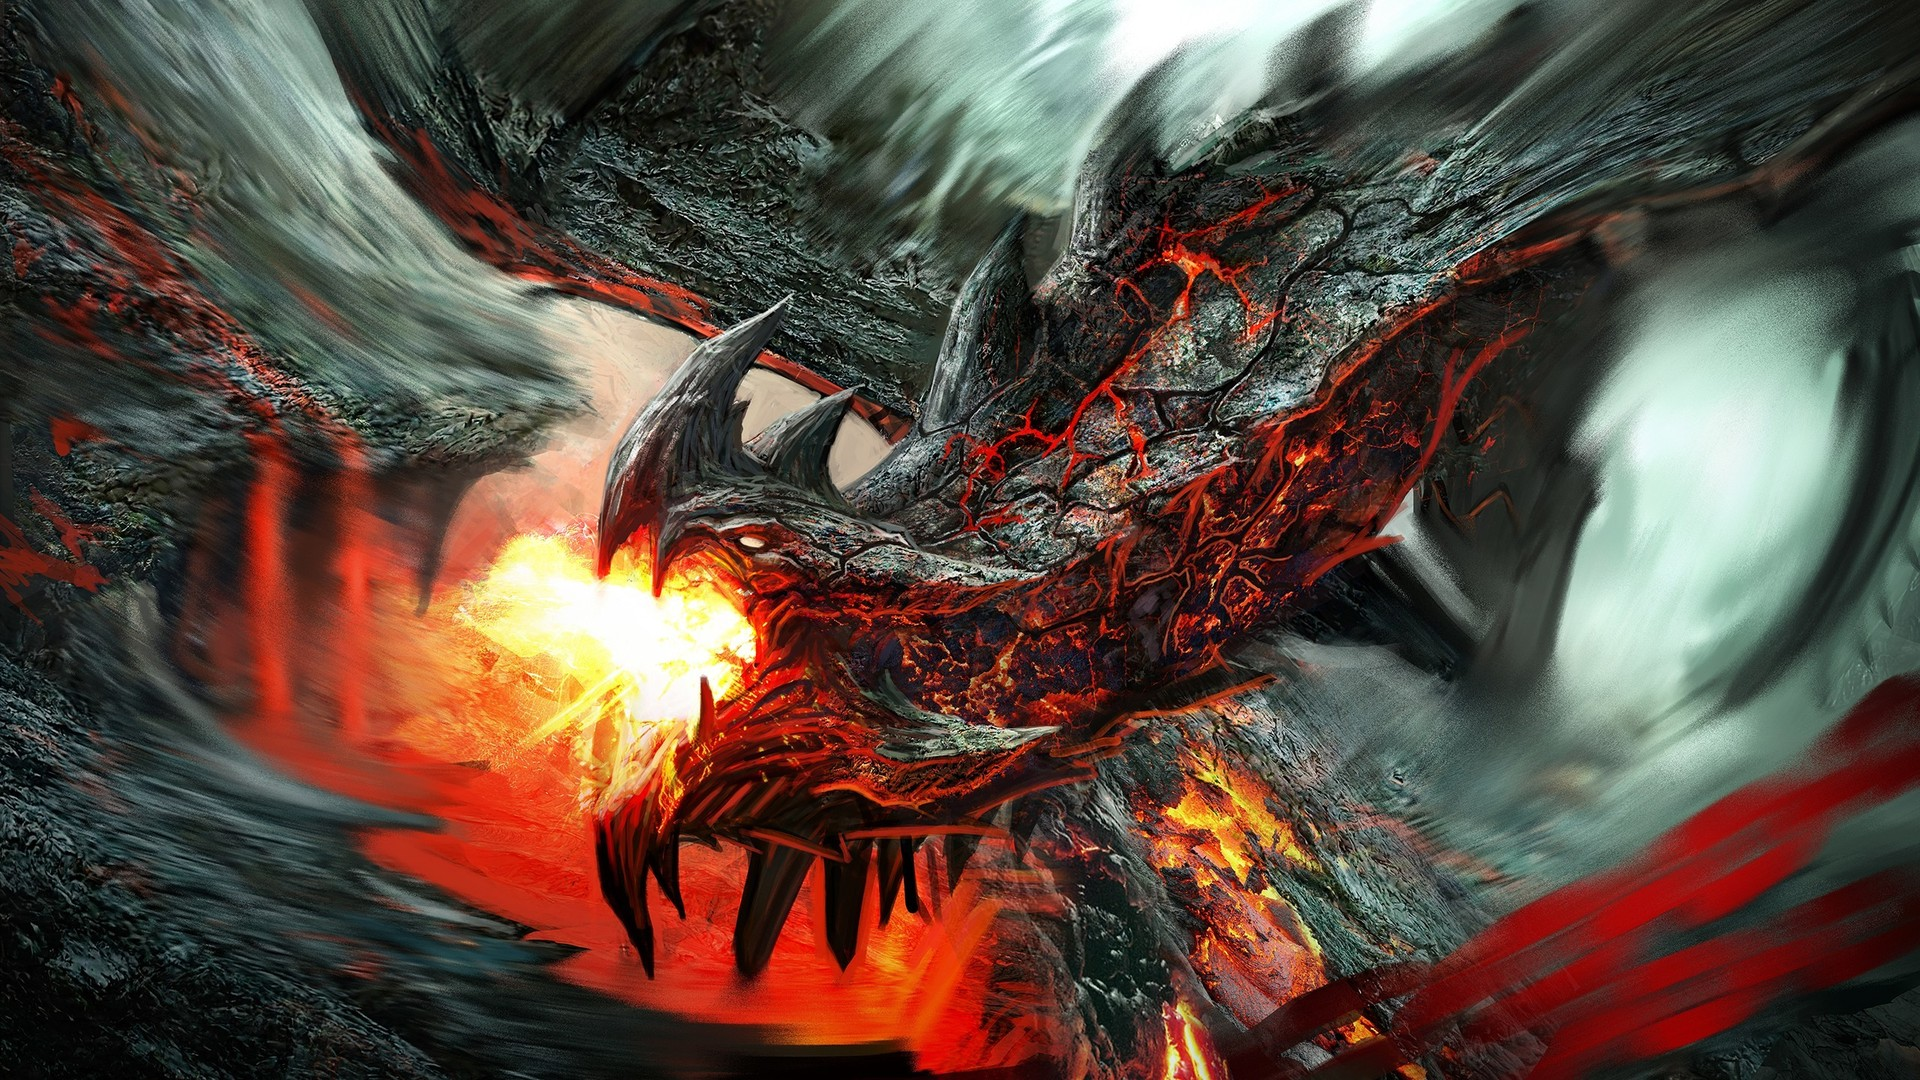 Coolest Dragon Wallpapers   Dragon City Guide 1920x1080